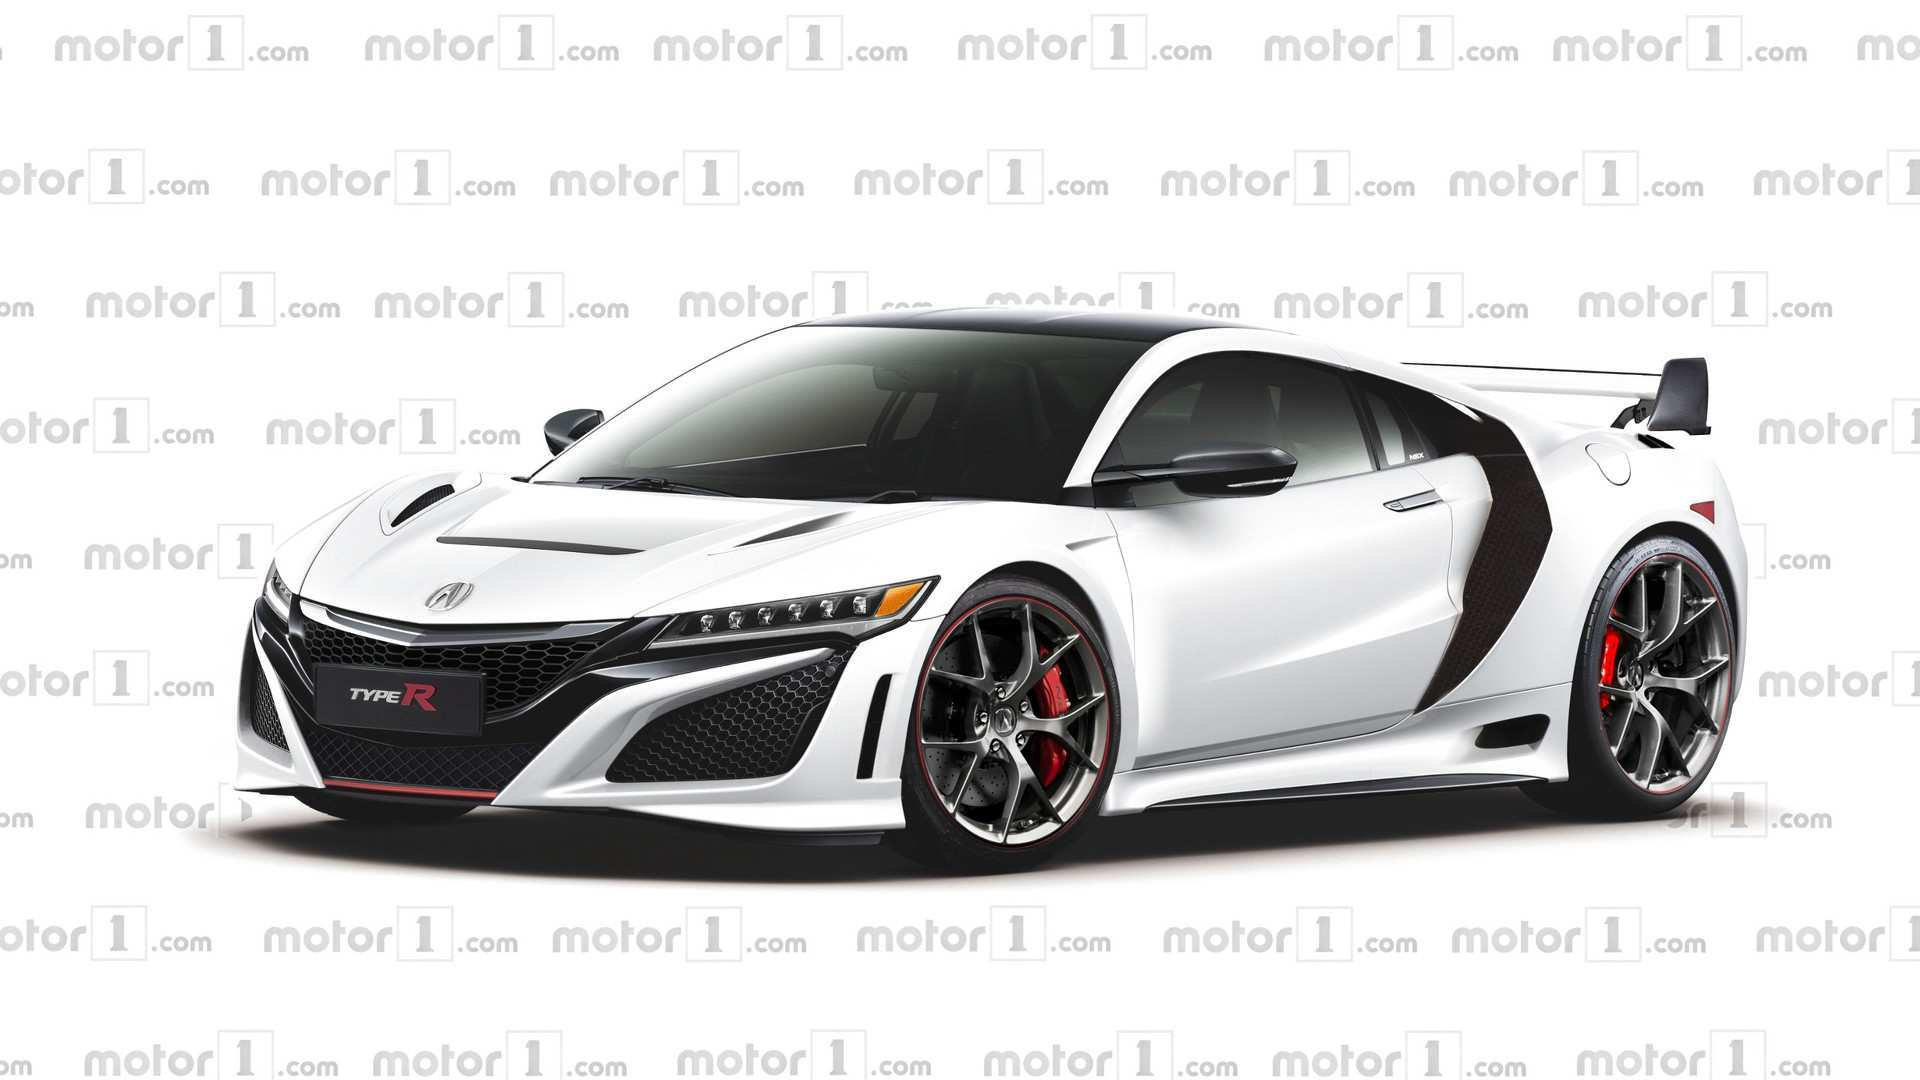 33 Gallery of 2020 Acura Nsx Price Speed Test for 2020 Acura Nsx Price